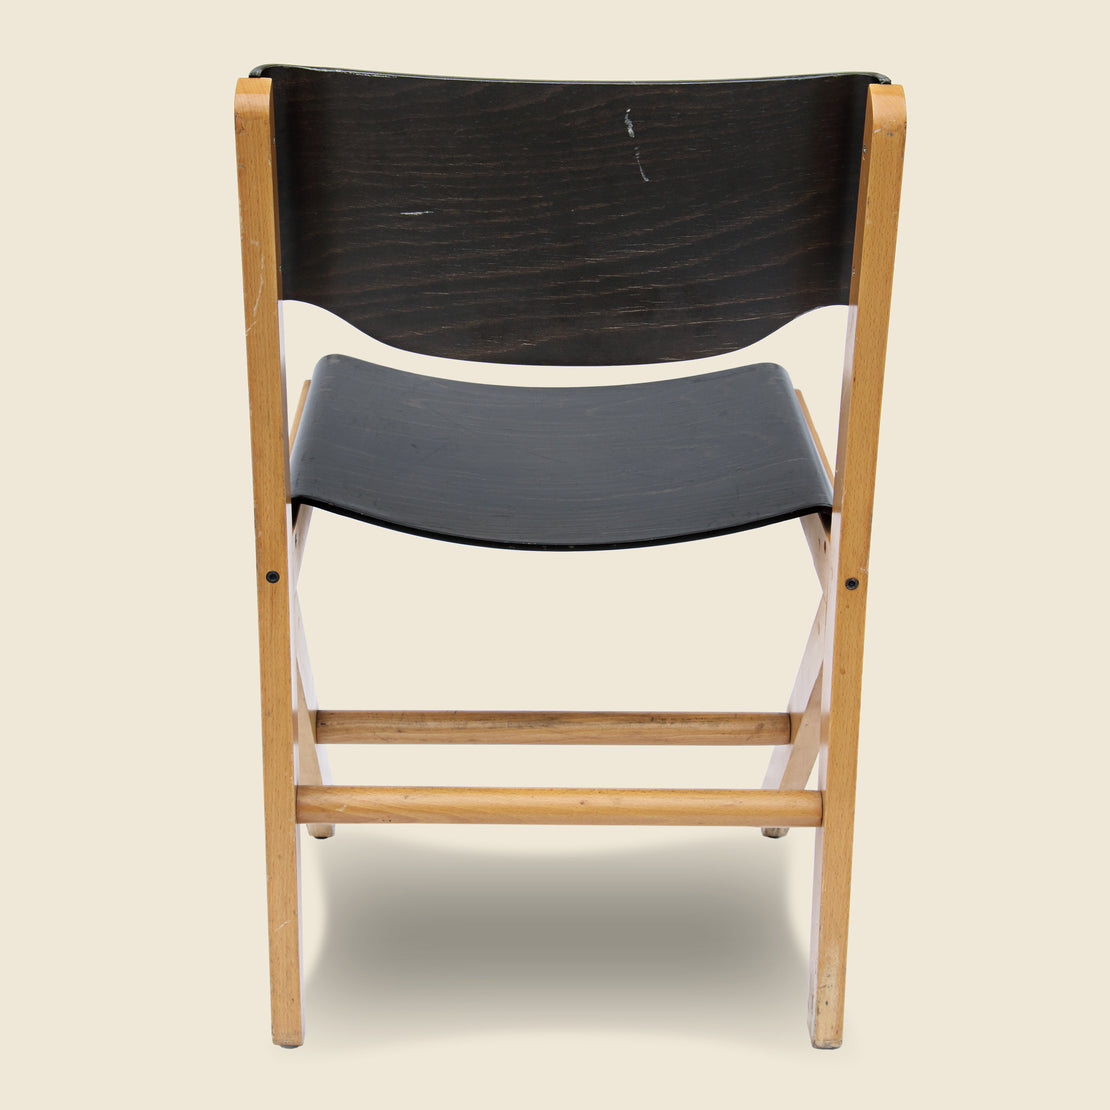 English Industrial Plywood Chair - Black